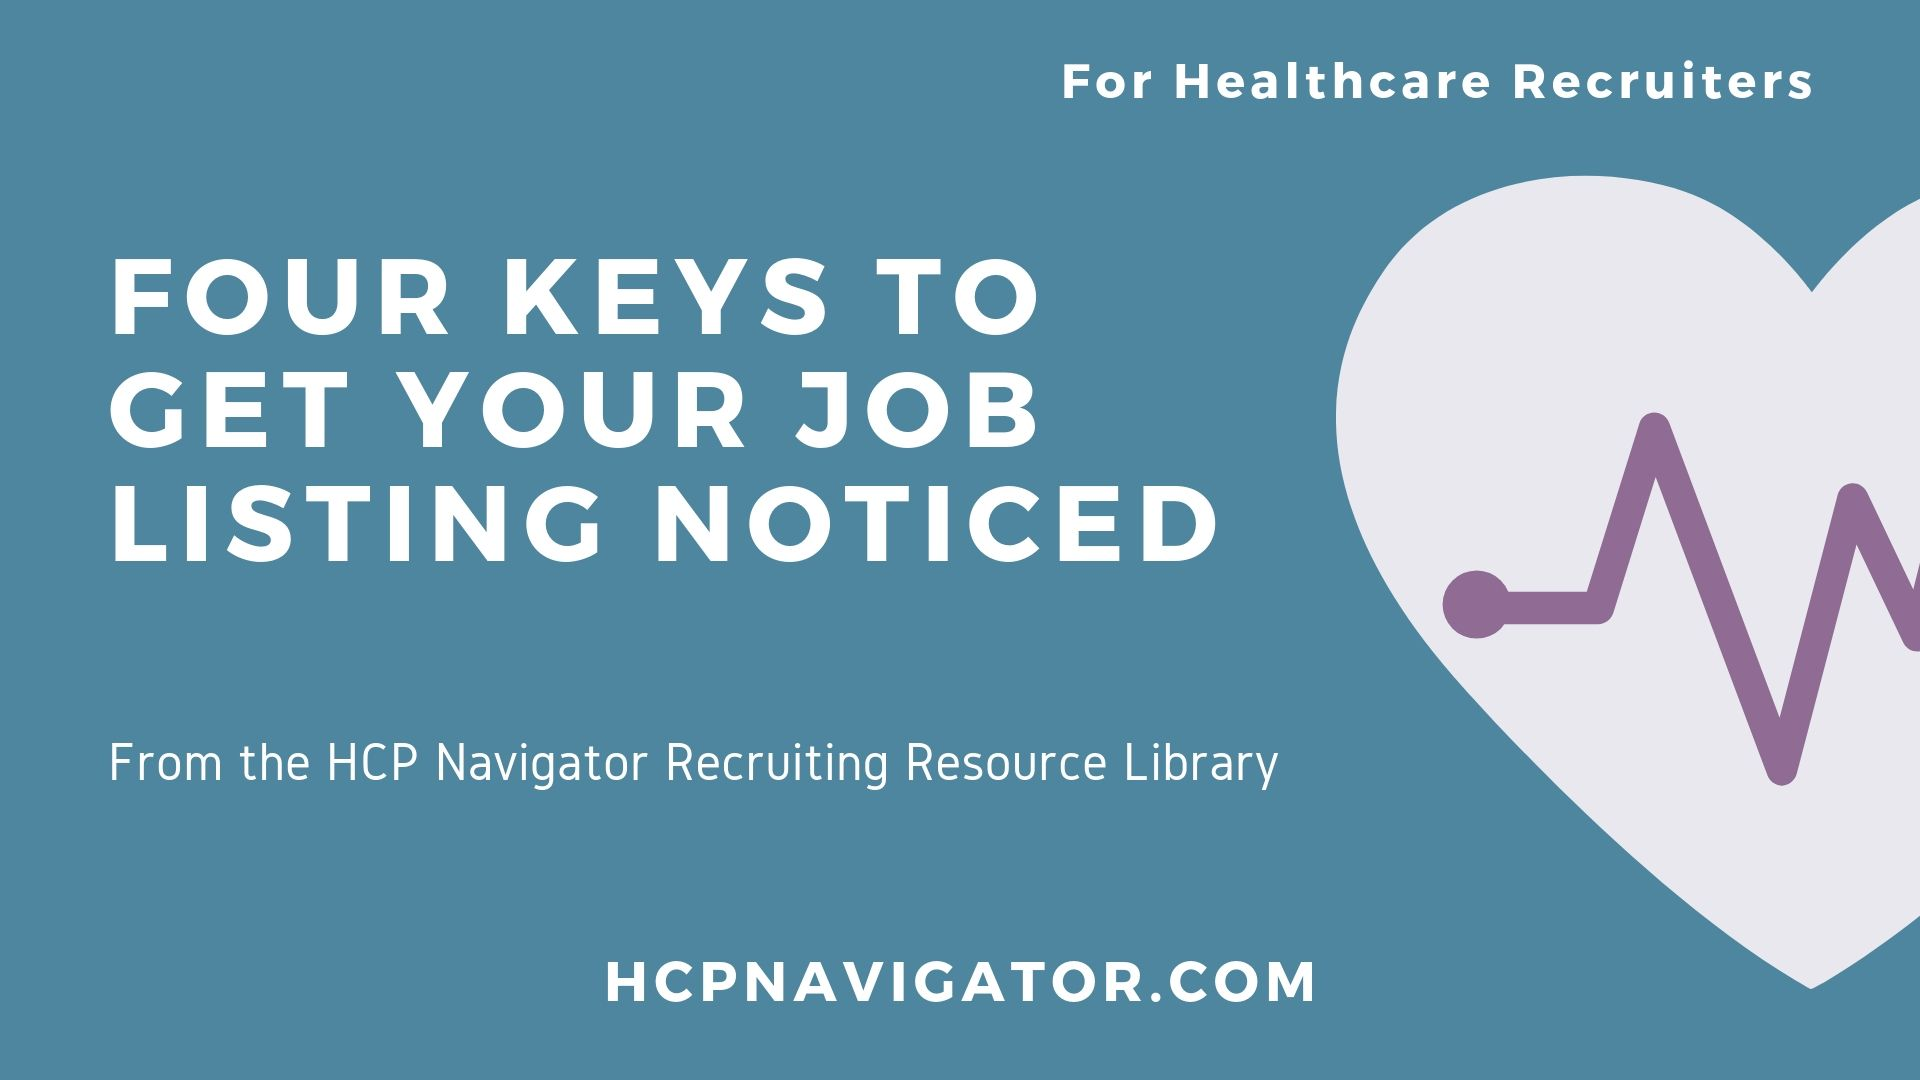 Four Keys to Get Your Job Listing Noticed